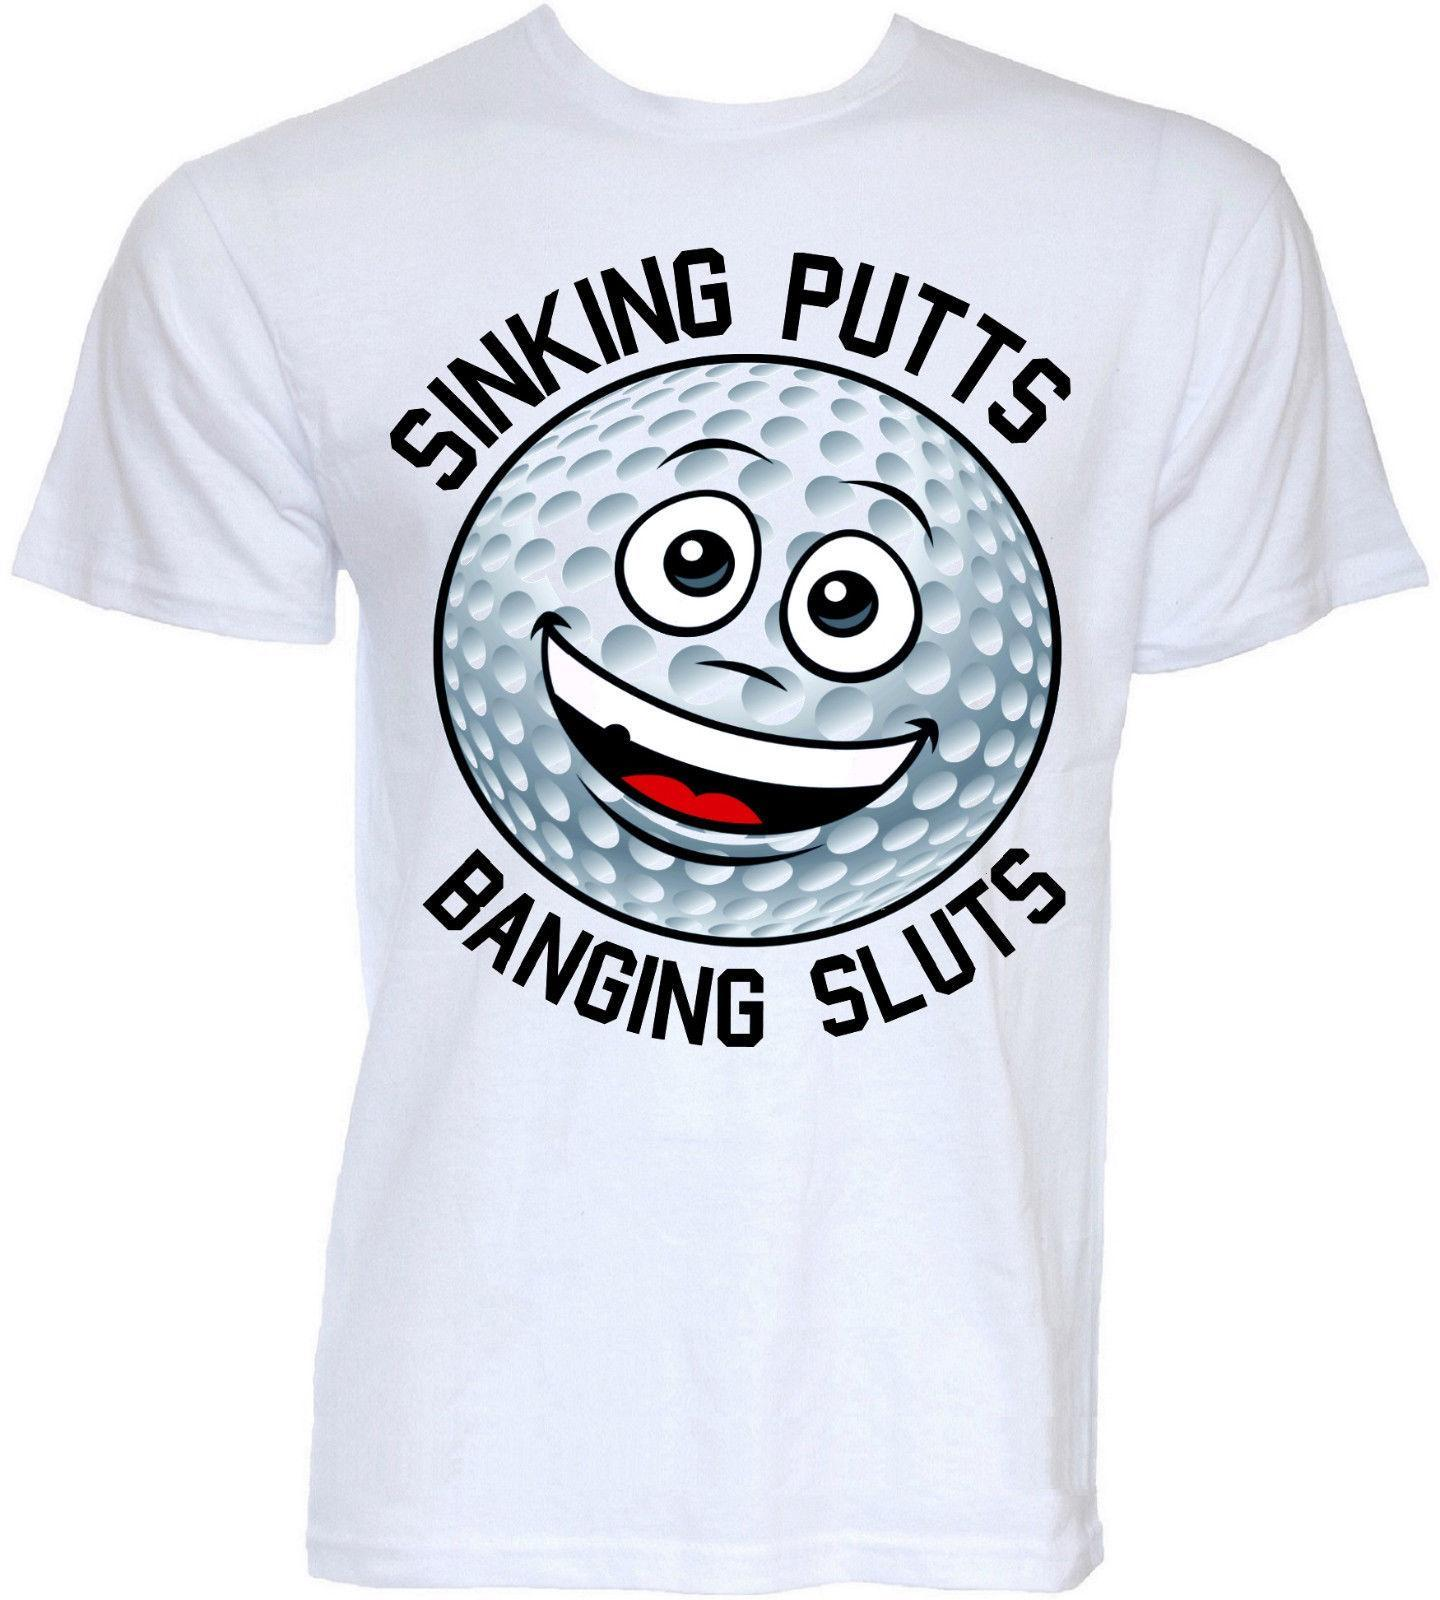 e79fb77251 MENS FUNNY GOLF T SHIRTS COOL NOVELTY GOLFER GOLFING JOKE SLOGAN GIFTS T  SHIRT Crazy T Shirts T Shirt Prints From Yubin06, $25.33| DHgate.Com